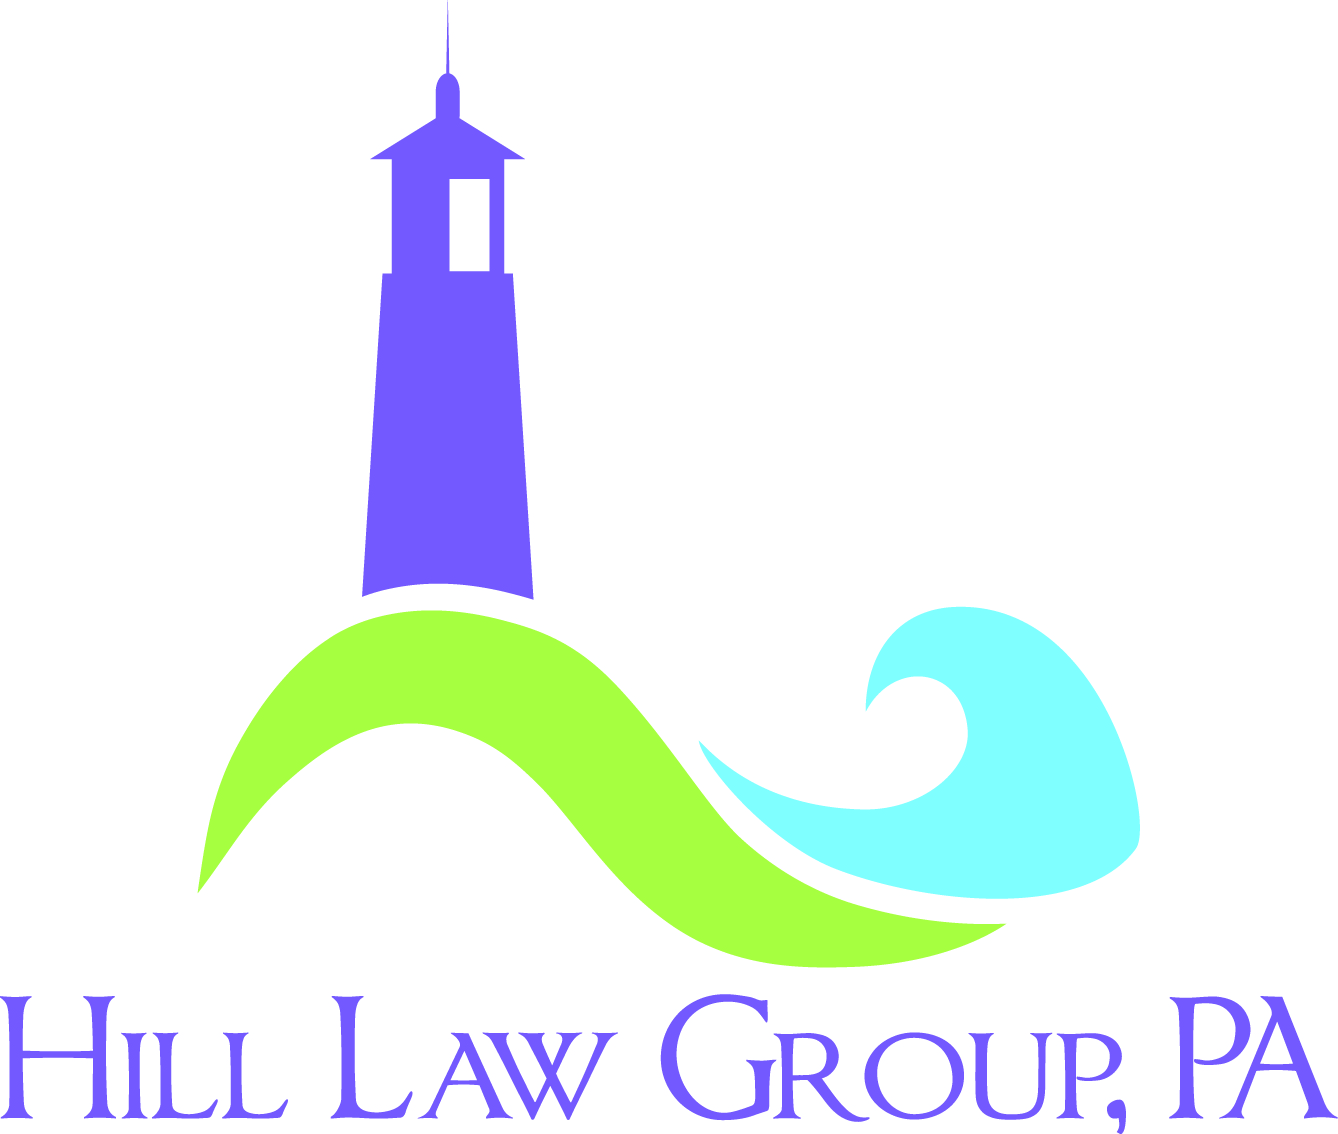 Hill Law Group